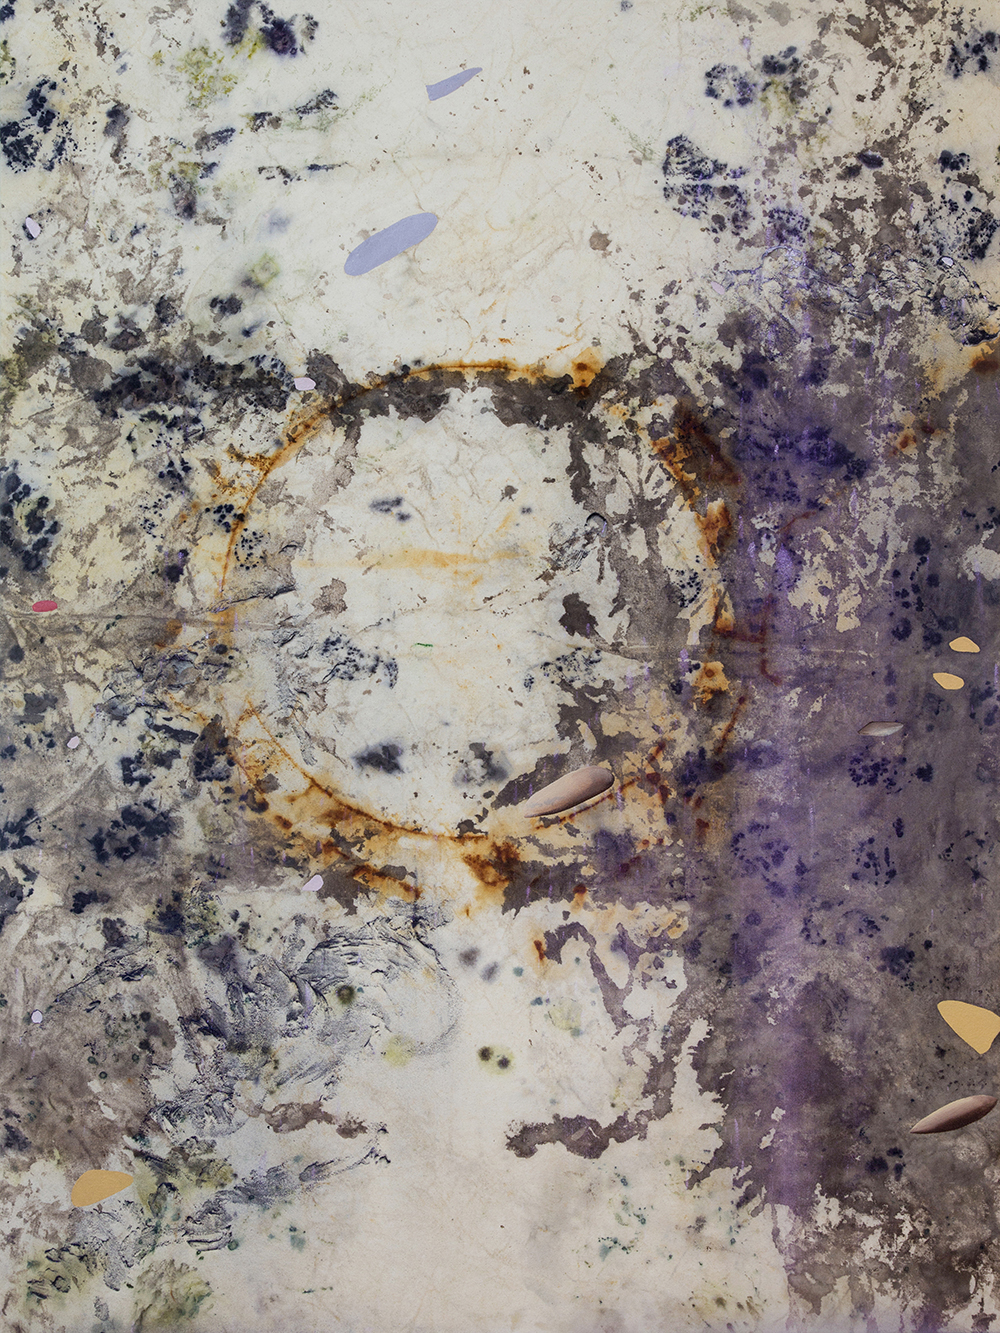 "Gillian King,  Moon Marrow , 2019, médium à cire froide, huile, pigments bruts, sédiments de rouille et divers matériaux végétaux (peau d'oignon, rose, sumac et fleurs sauvages) sur toile, 48"" x 36"" (122 x91 cm)"